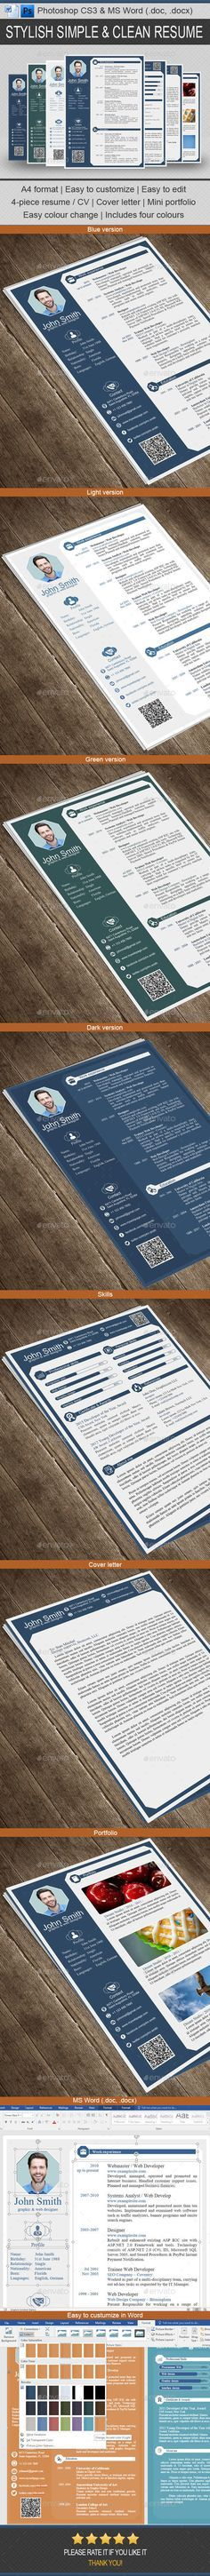 8 Best Cv images Coffee store, Bakery cafe, Cafe chairs